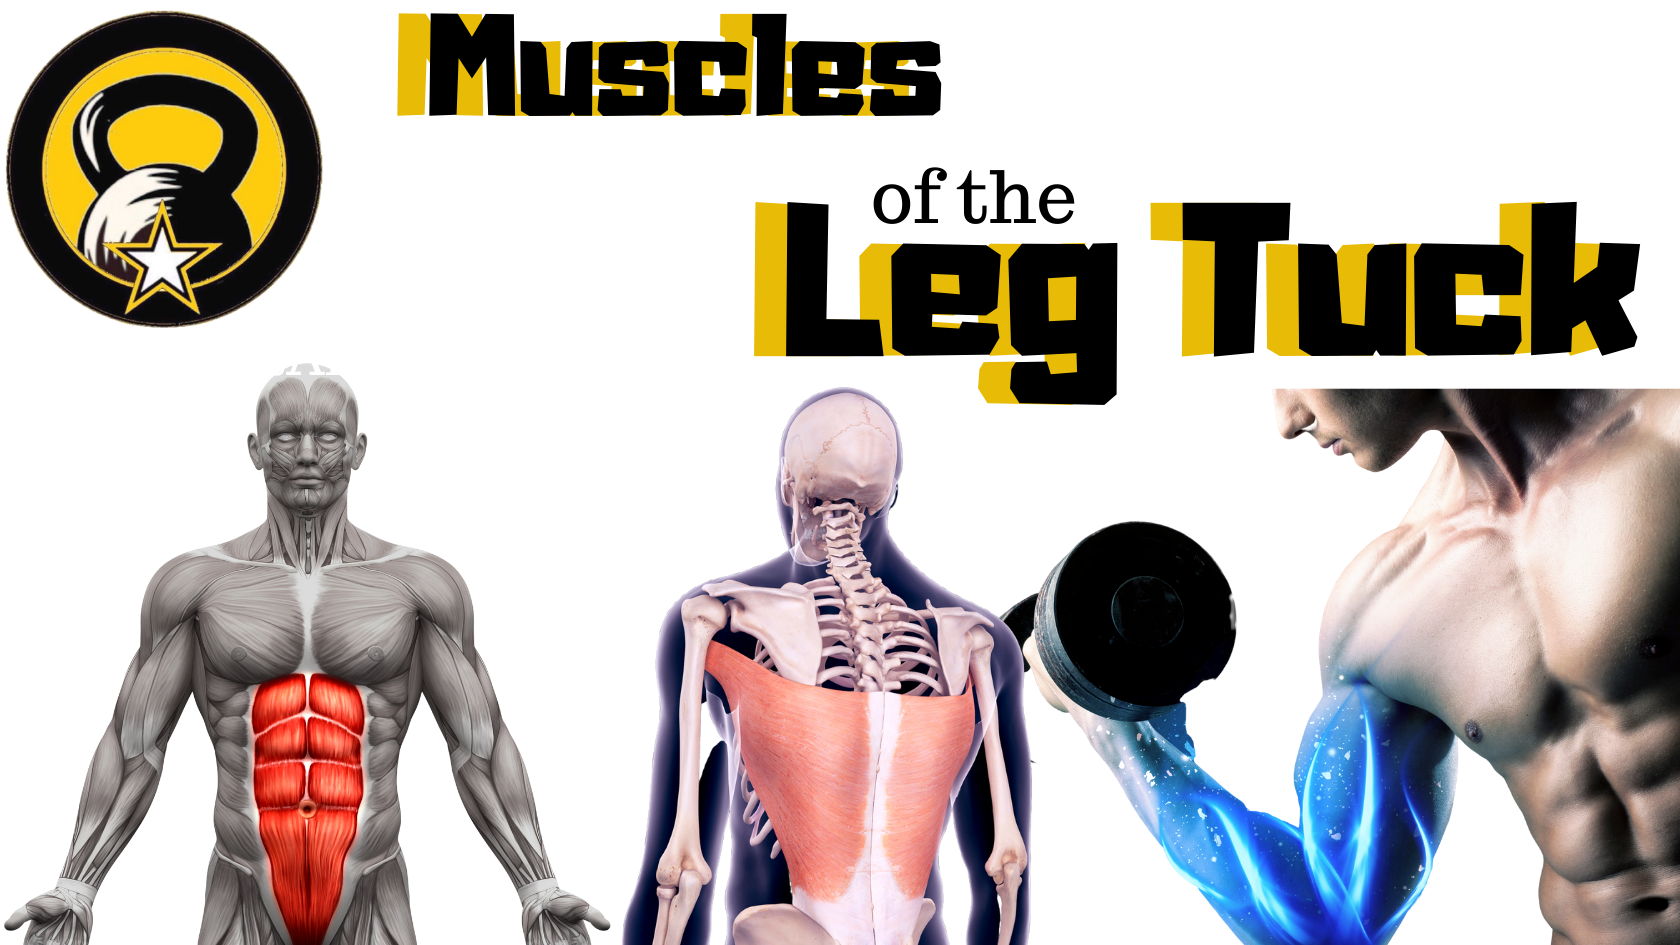 Muscles of the Leg Tuck Pic